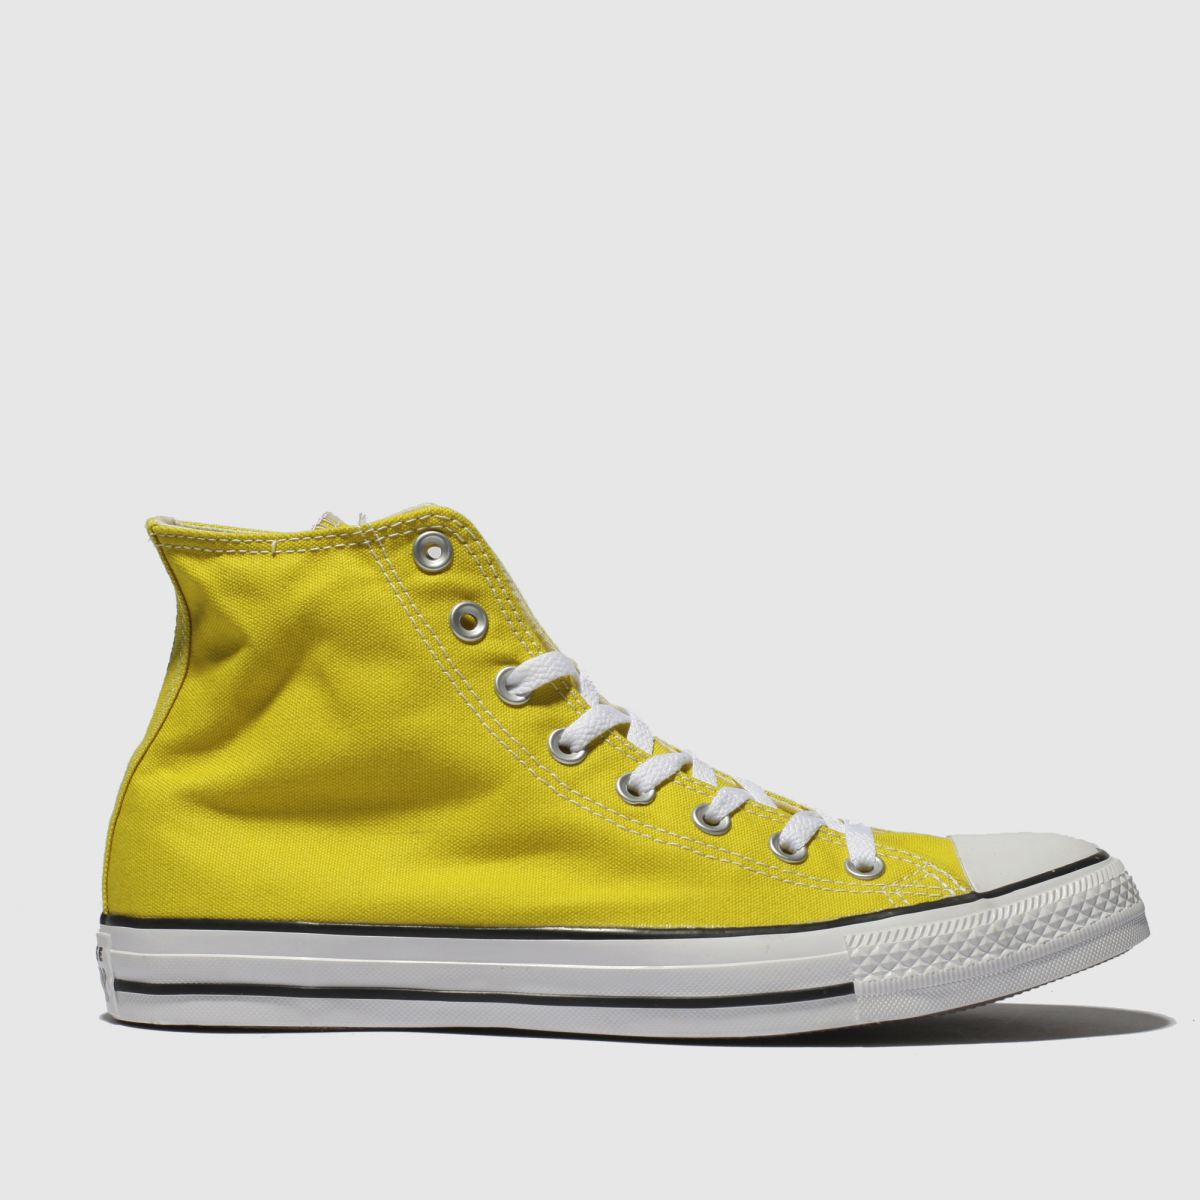 Converse Yellow Chuck Taylor All Star Hi Trainers